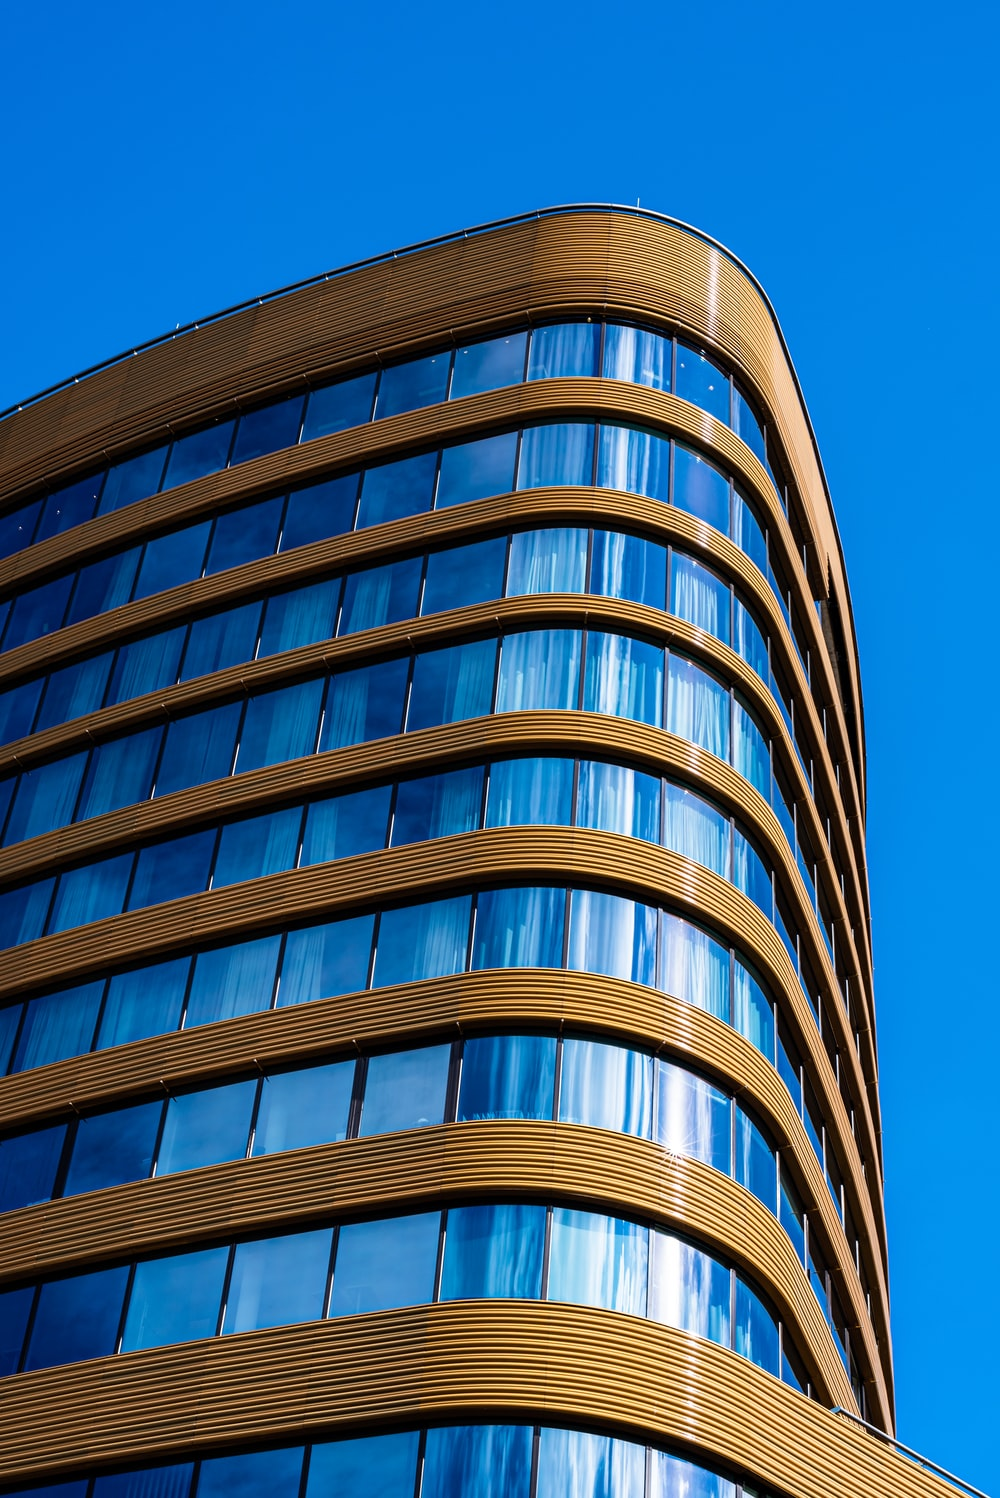 brown and blue glass building under blue sky